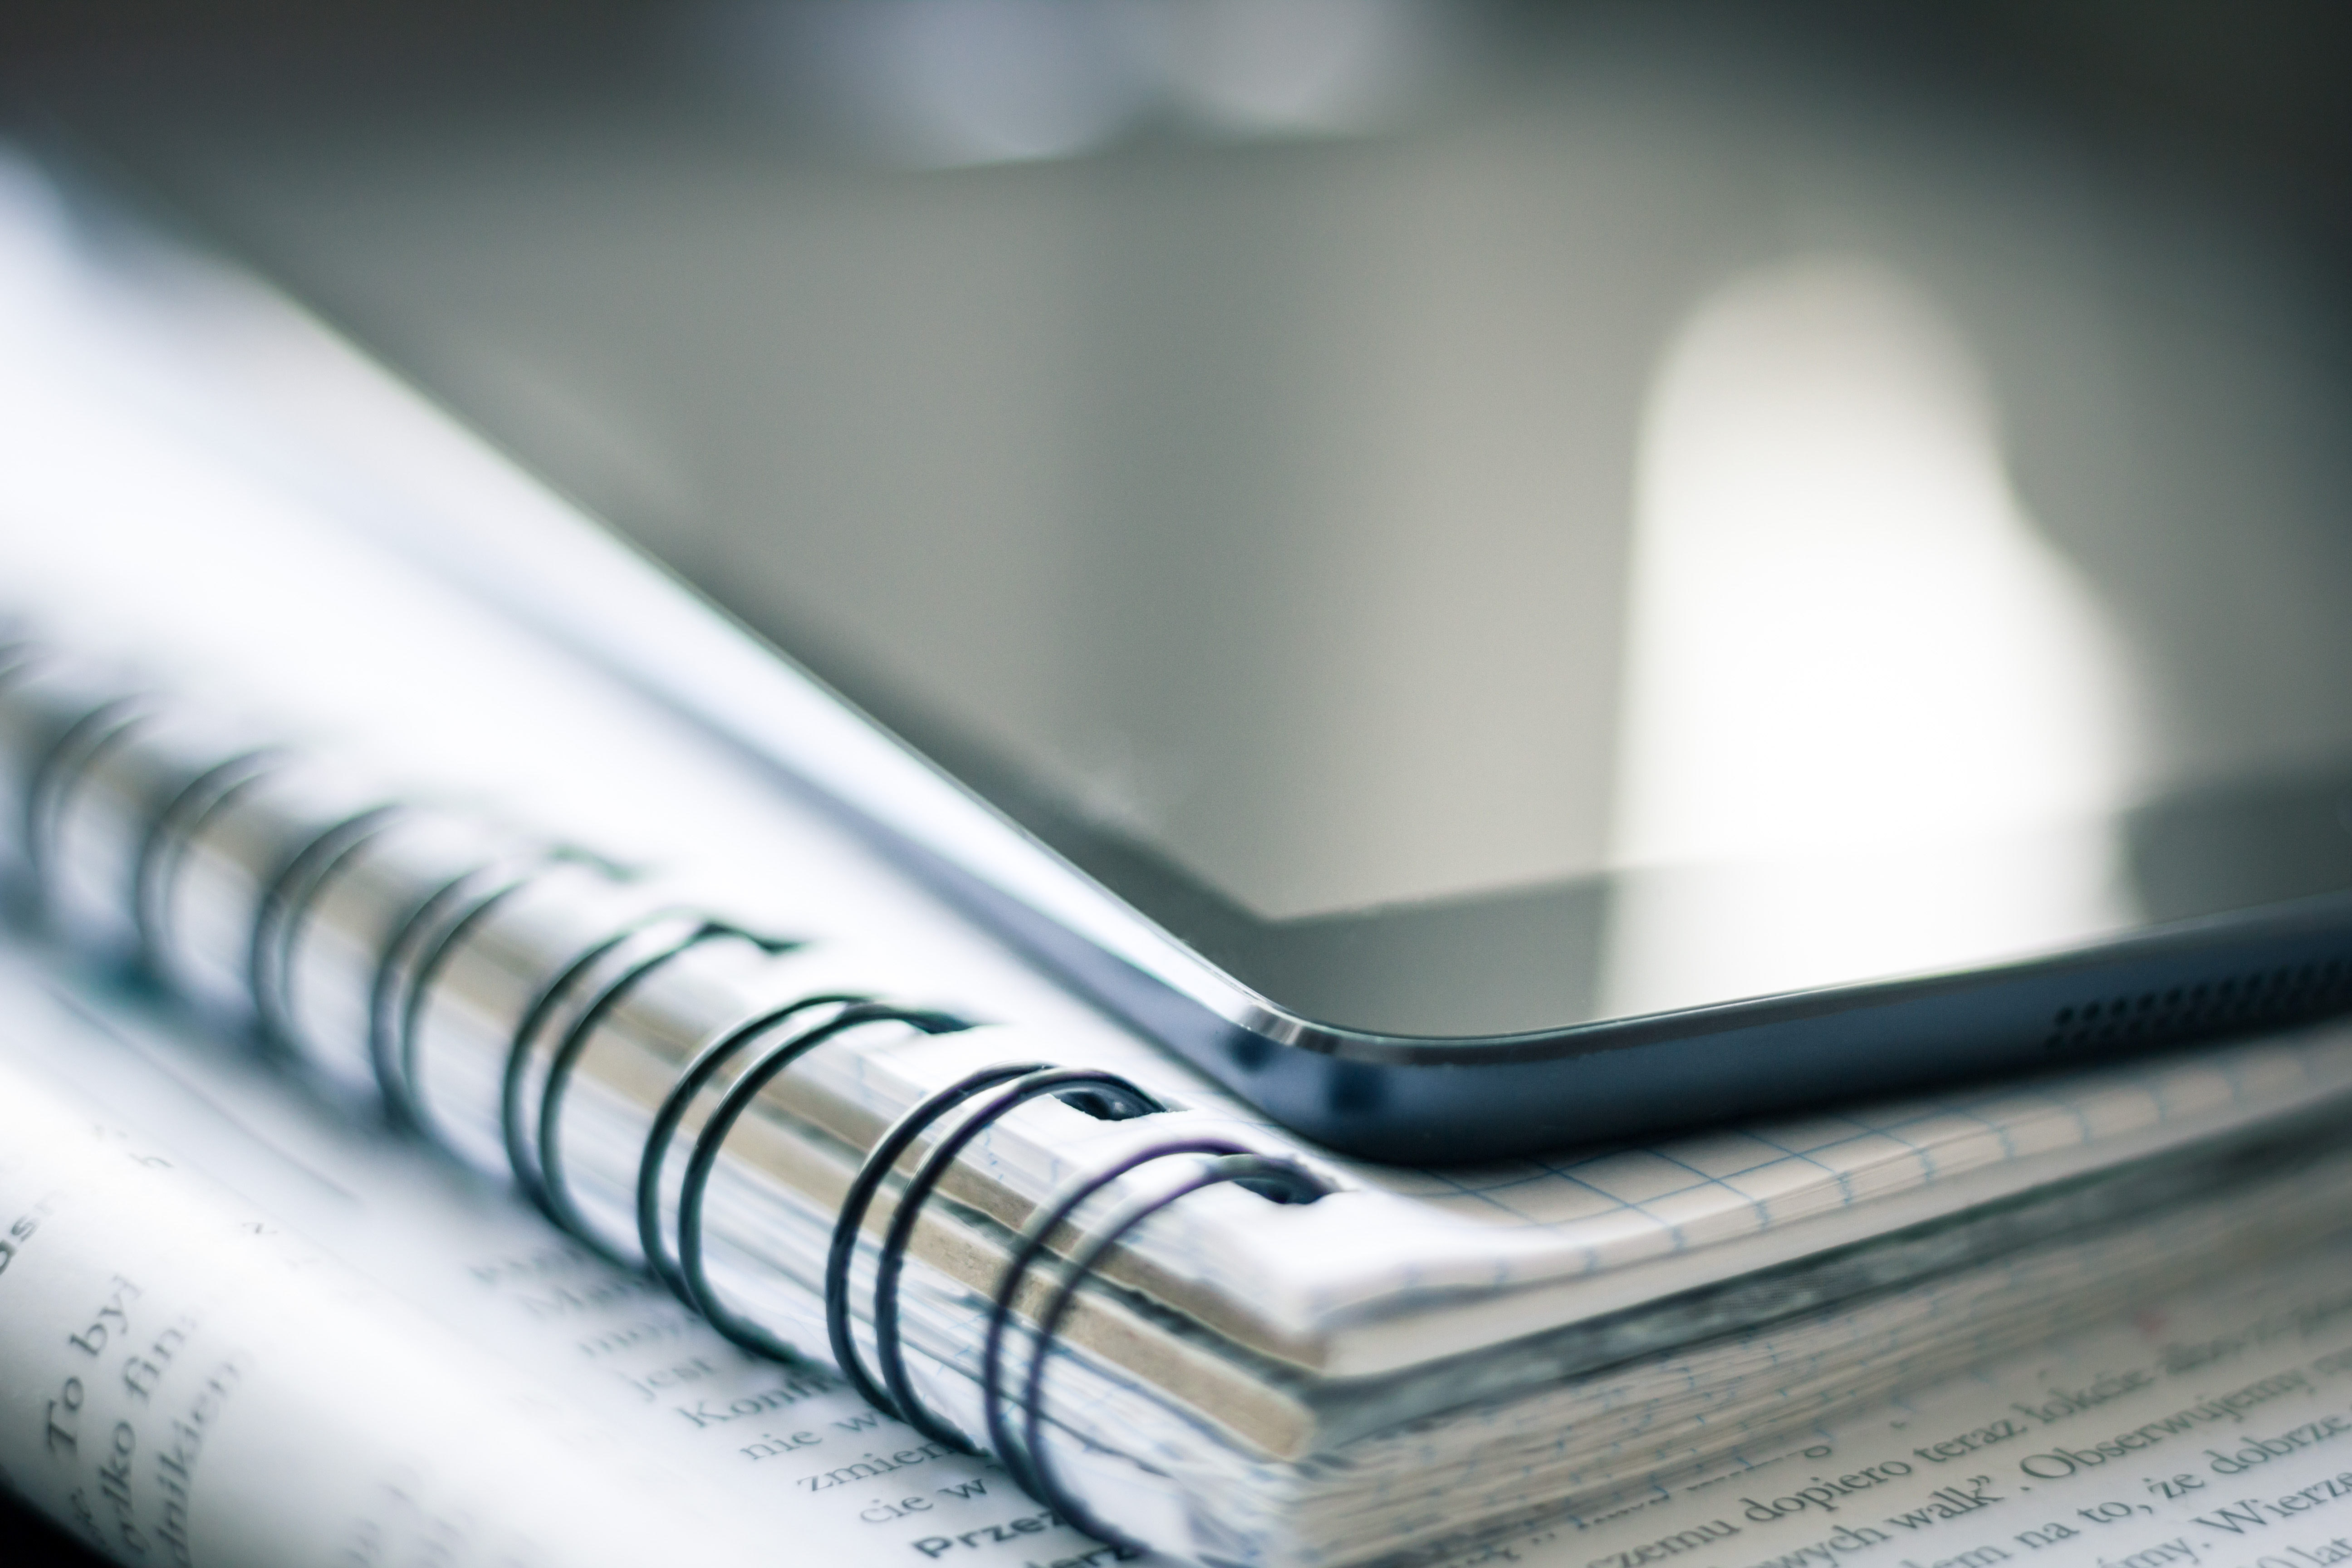 paper notebook and Ipad app